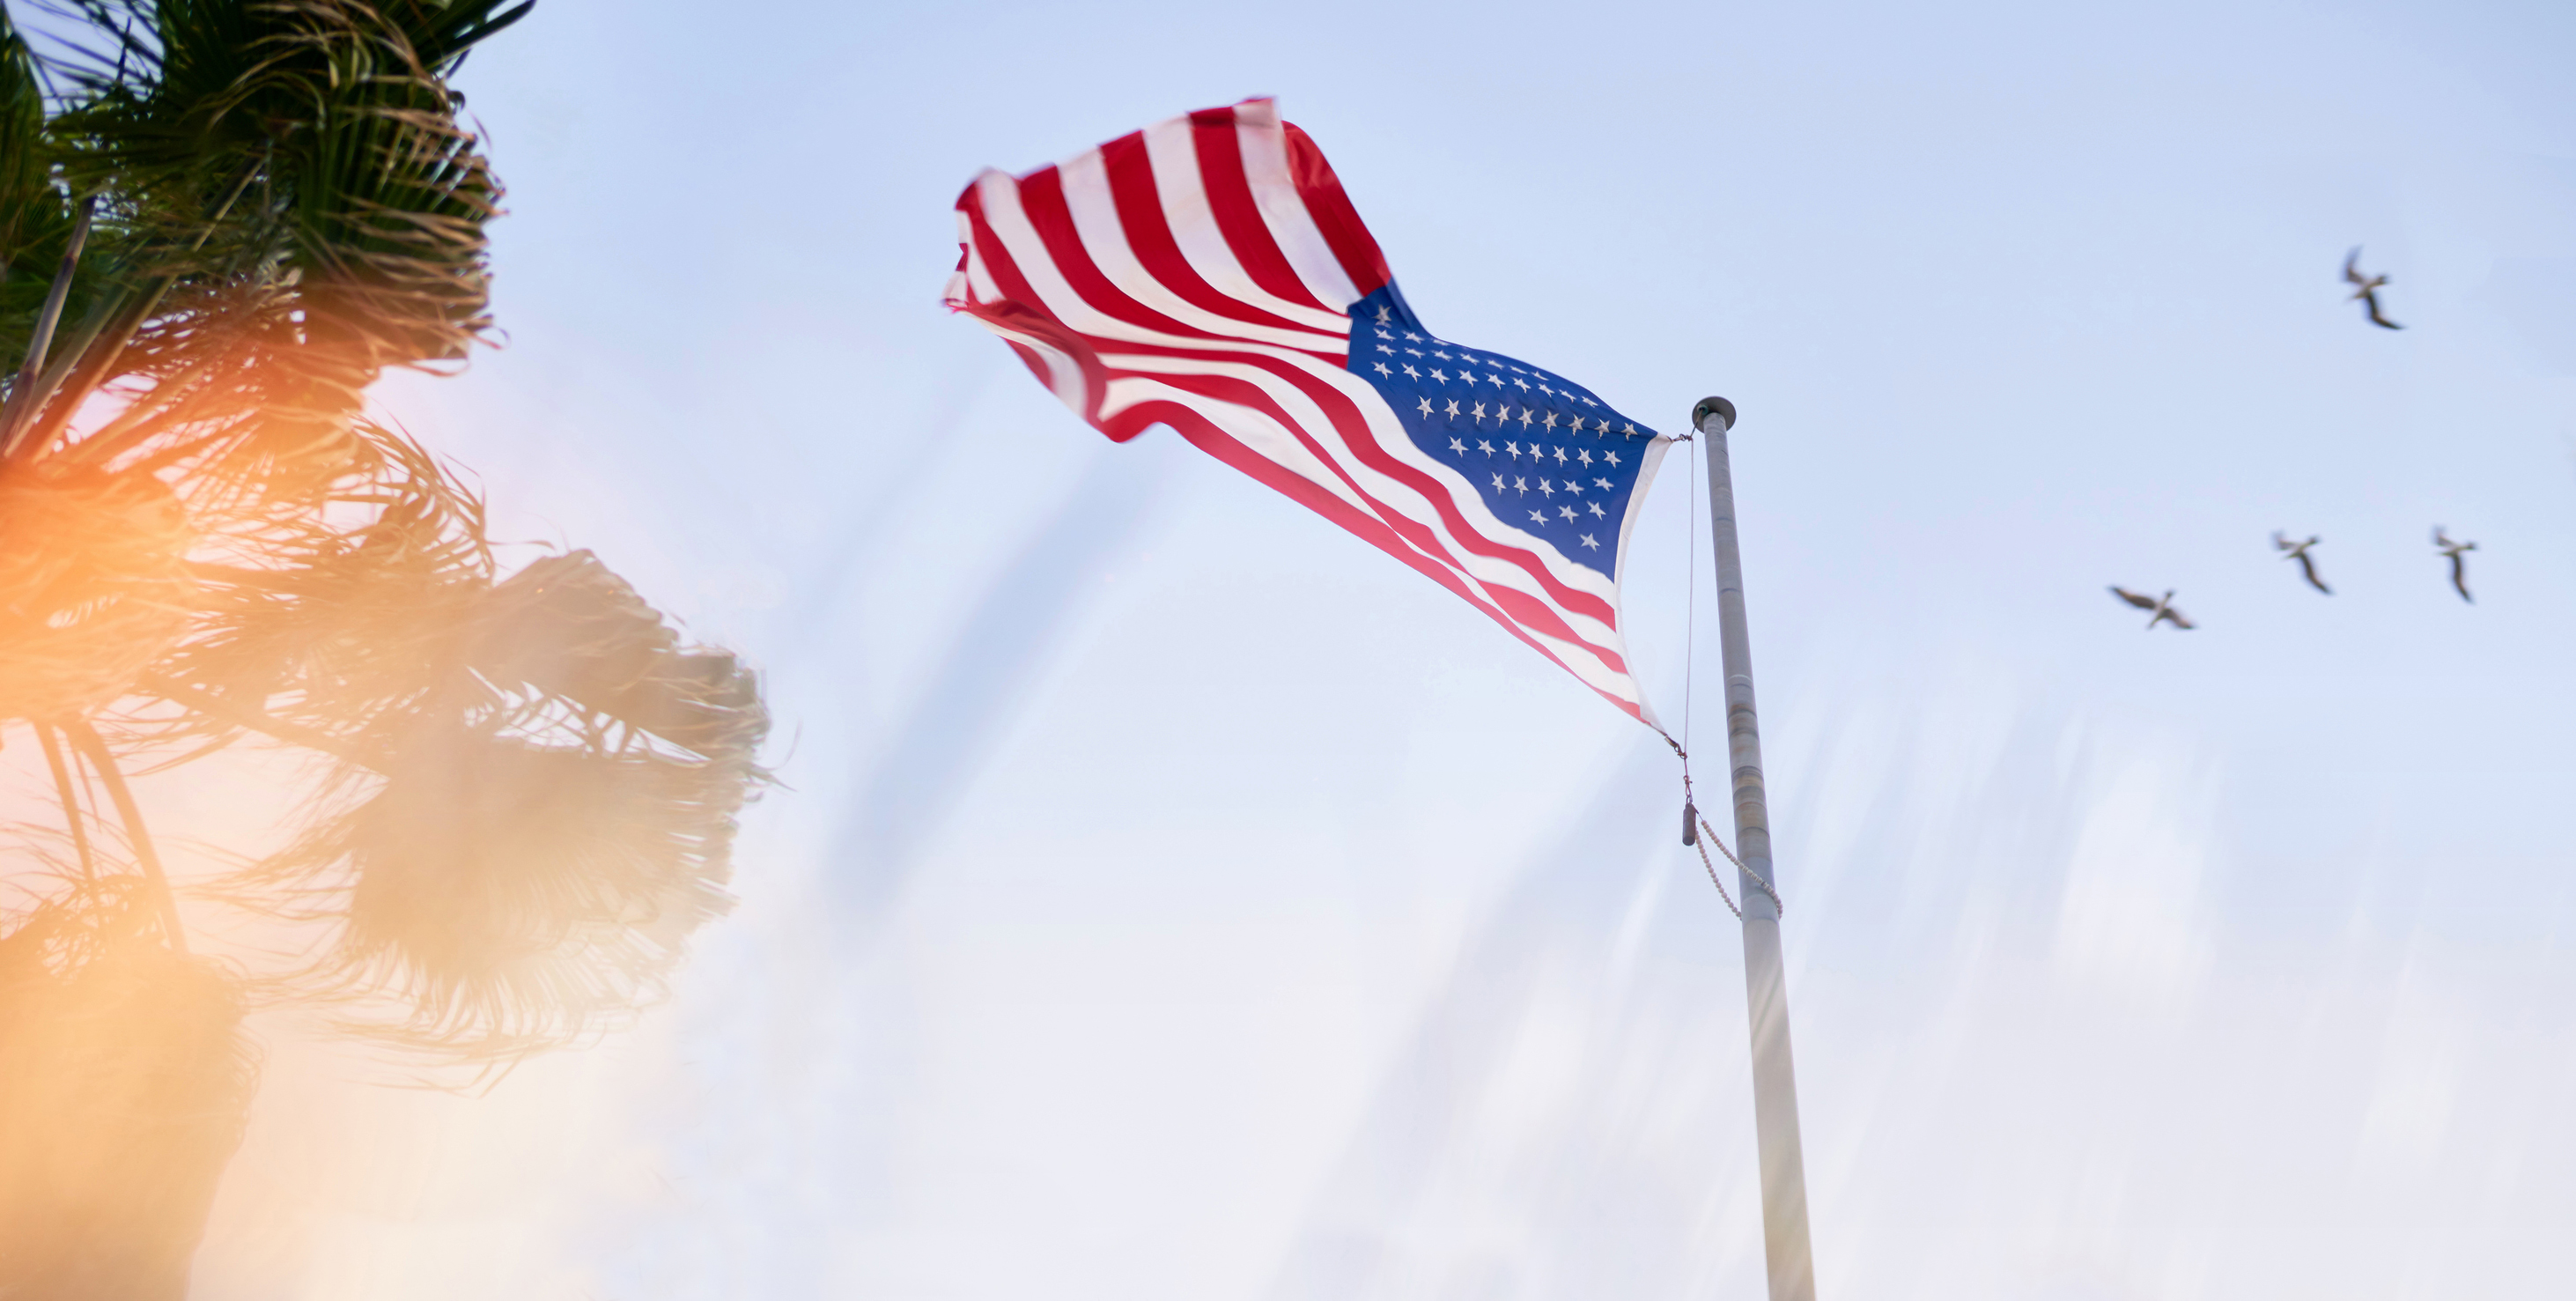 American Flag With Light Flare, Through Prism Optics